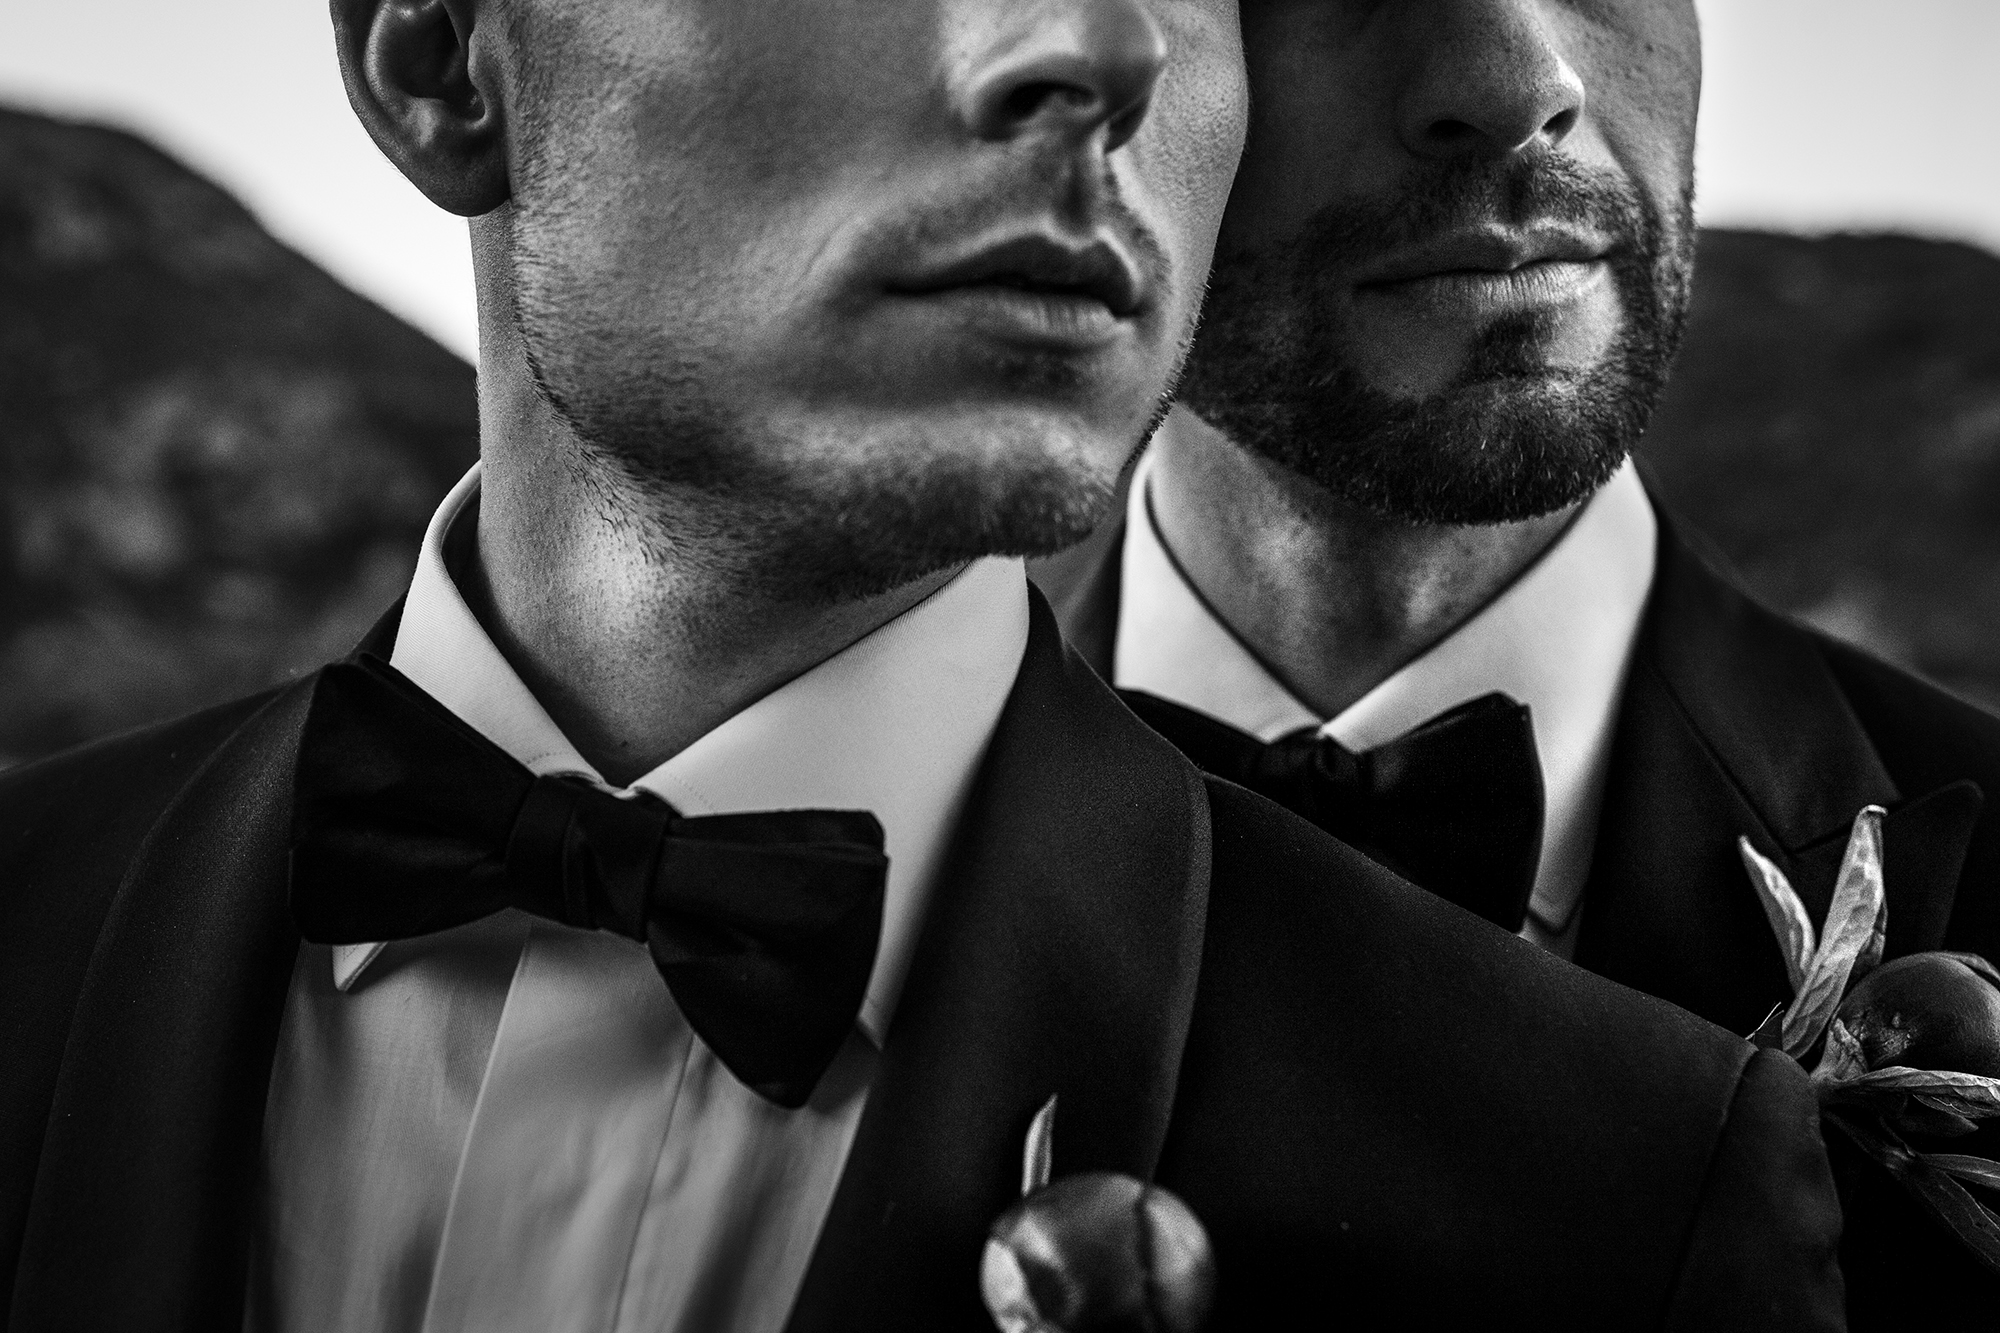 black-and-white-portrait-two-grooms-in-tuxes-worlds-best-wedding-photos-victor-lax-spain-wedding-photographer